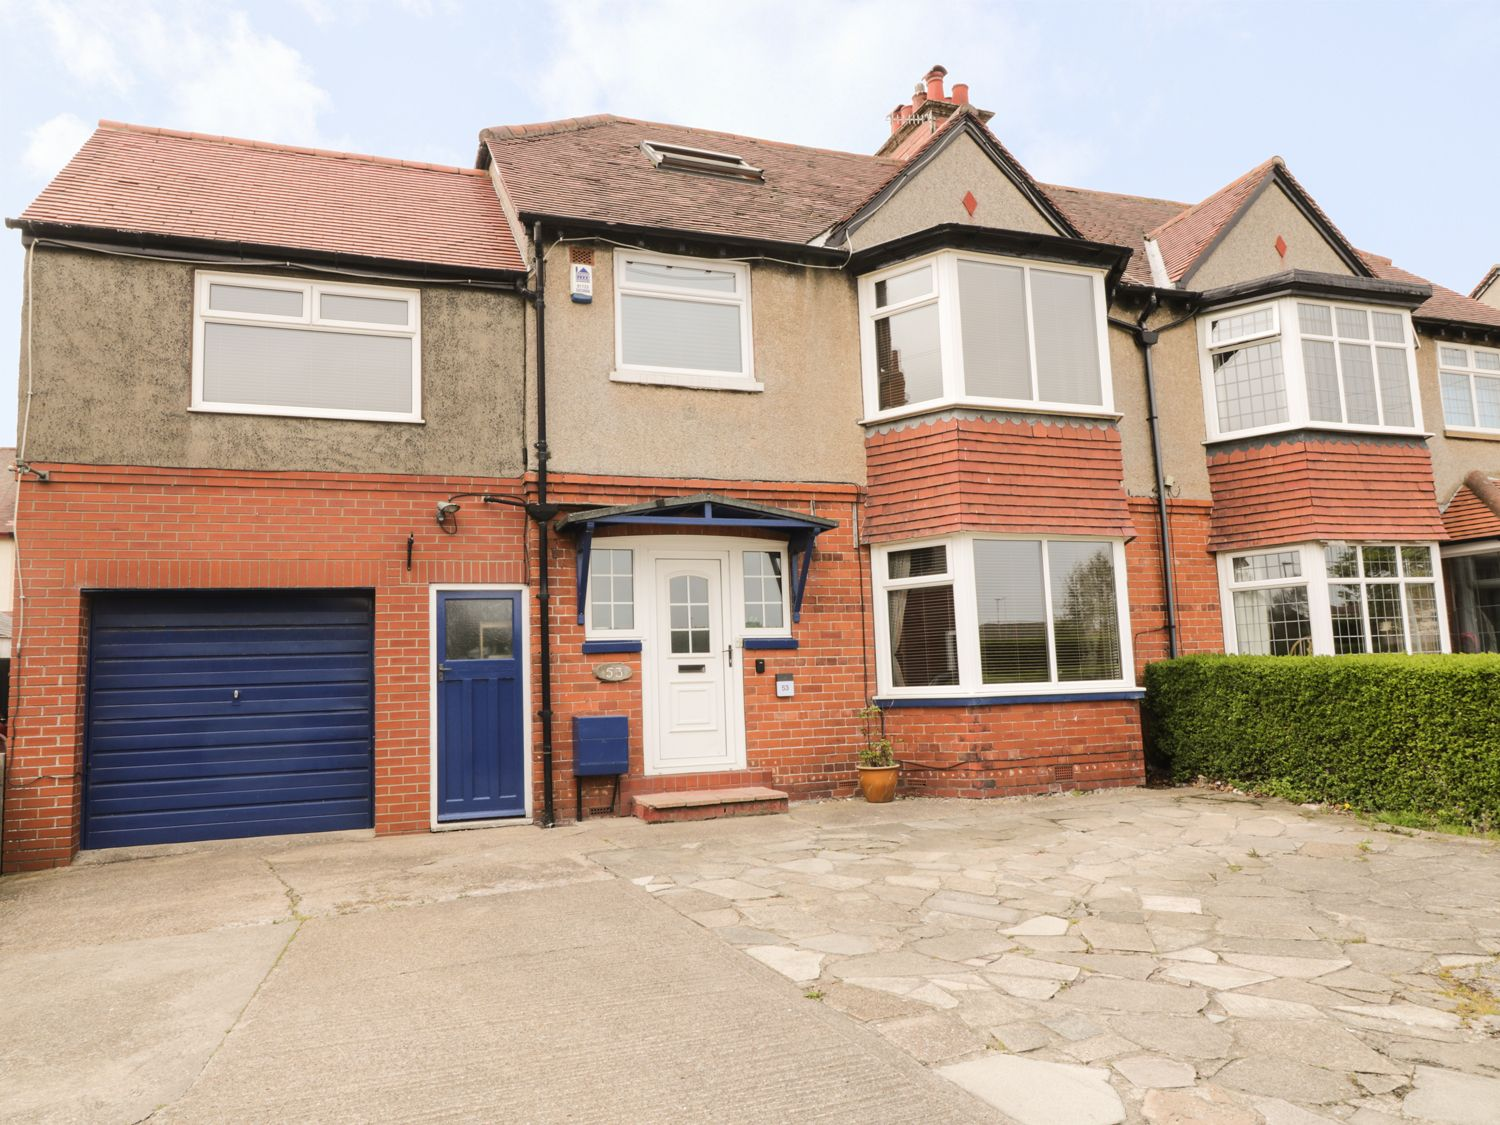 53 Burniston Road - Whitby & North Yorkshire - 996330 - photo 1